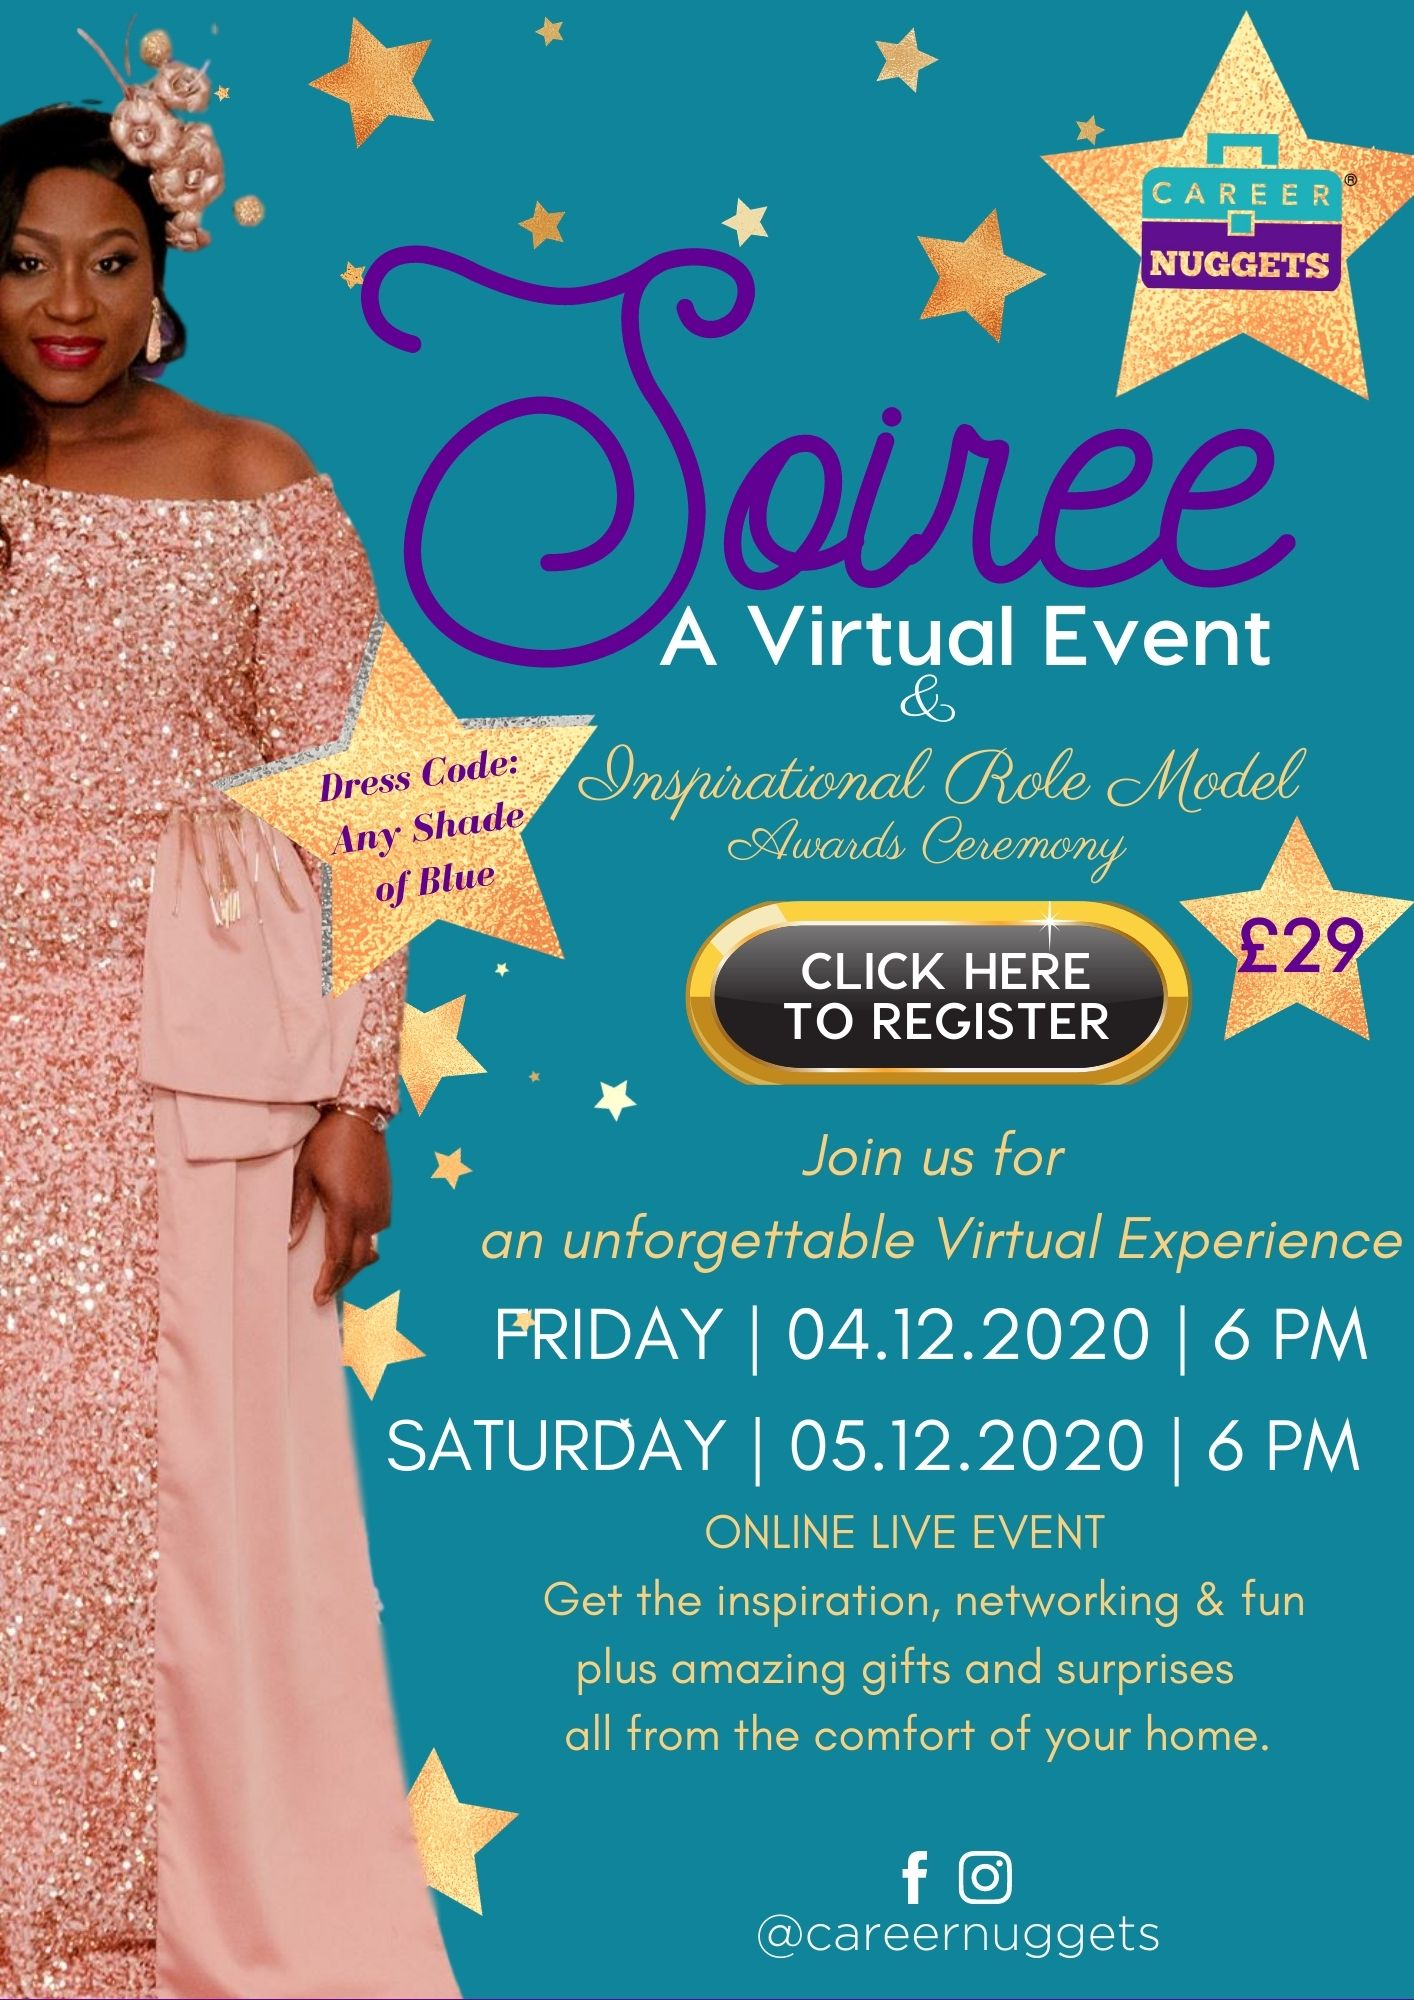 Career Nuggets Soiree (Virtual Live Event)